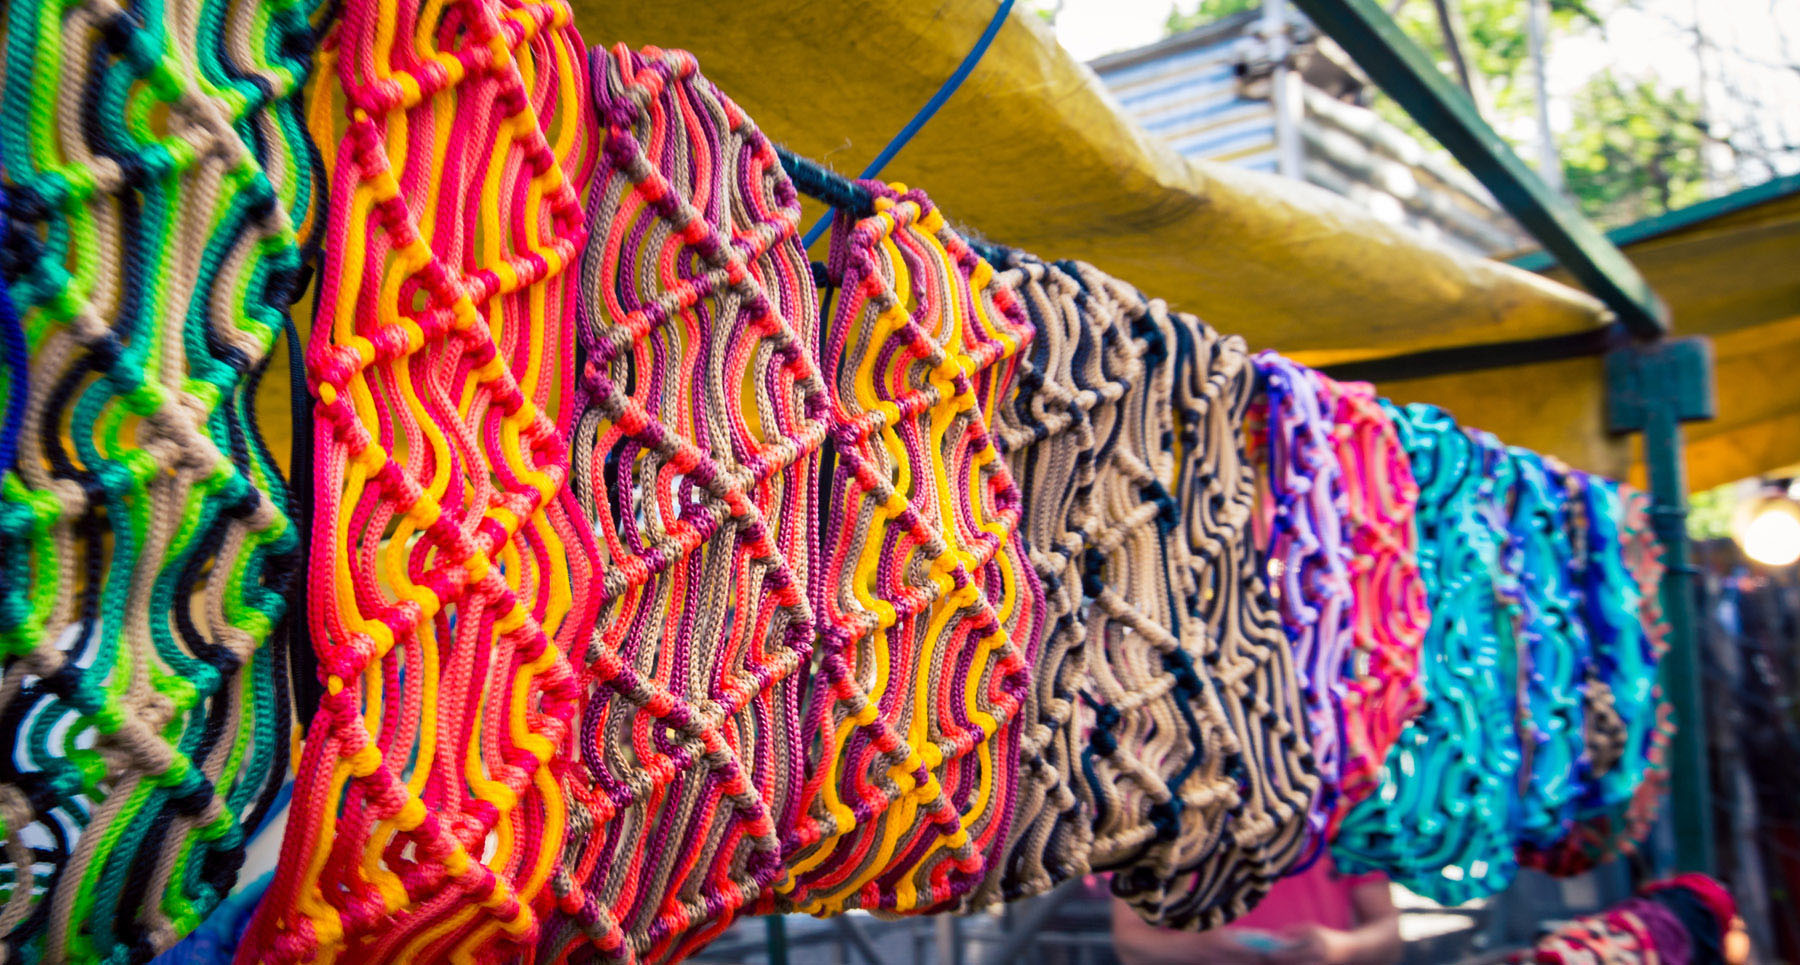 Row of colorful fabric at a market in Buenos Aires